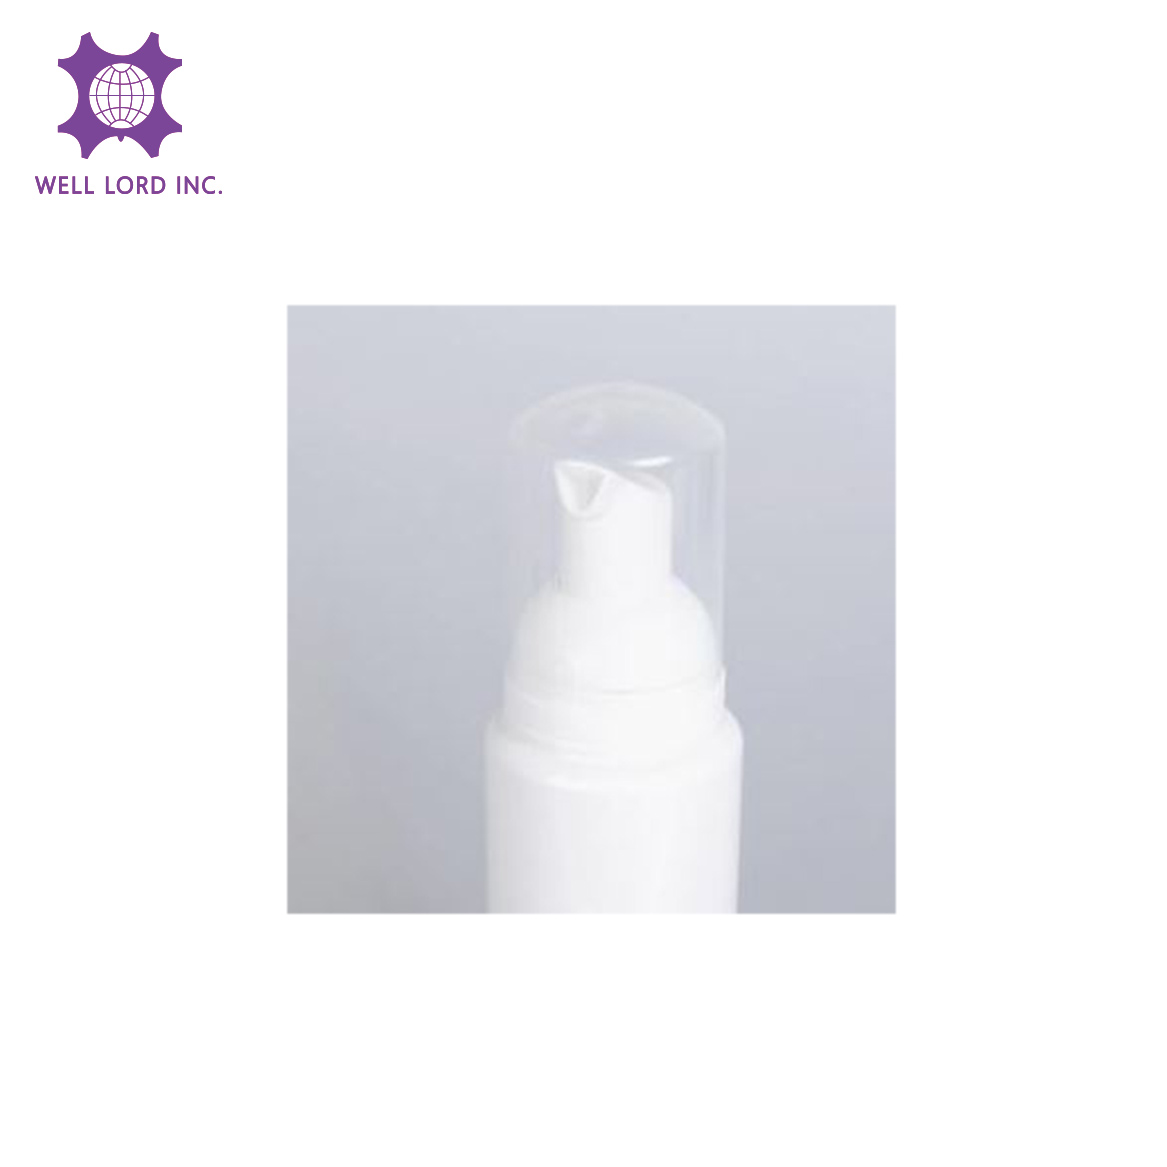 PP White customize multiple usage clear refillable pump Plastic trigger spray